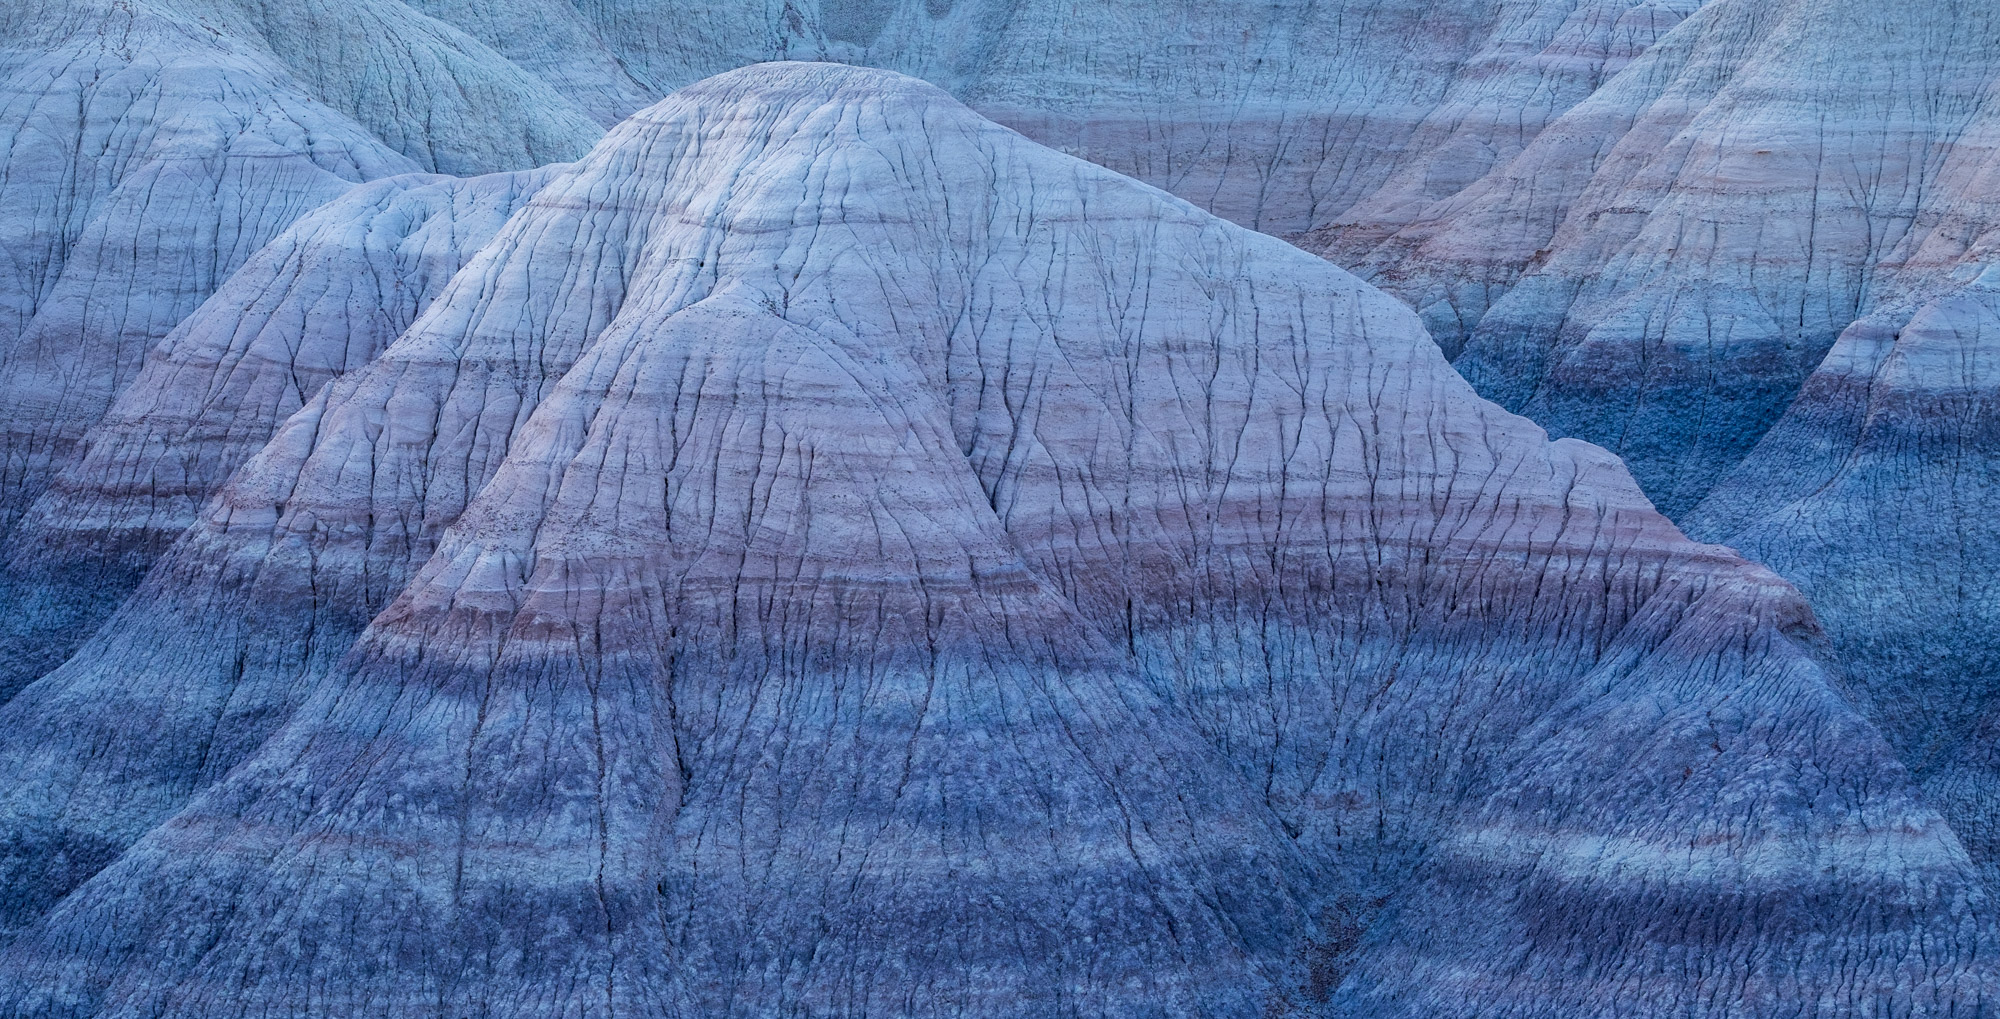 A great example of the blue hour at Blue Mesa and how it makes the striations in the hills very blue.